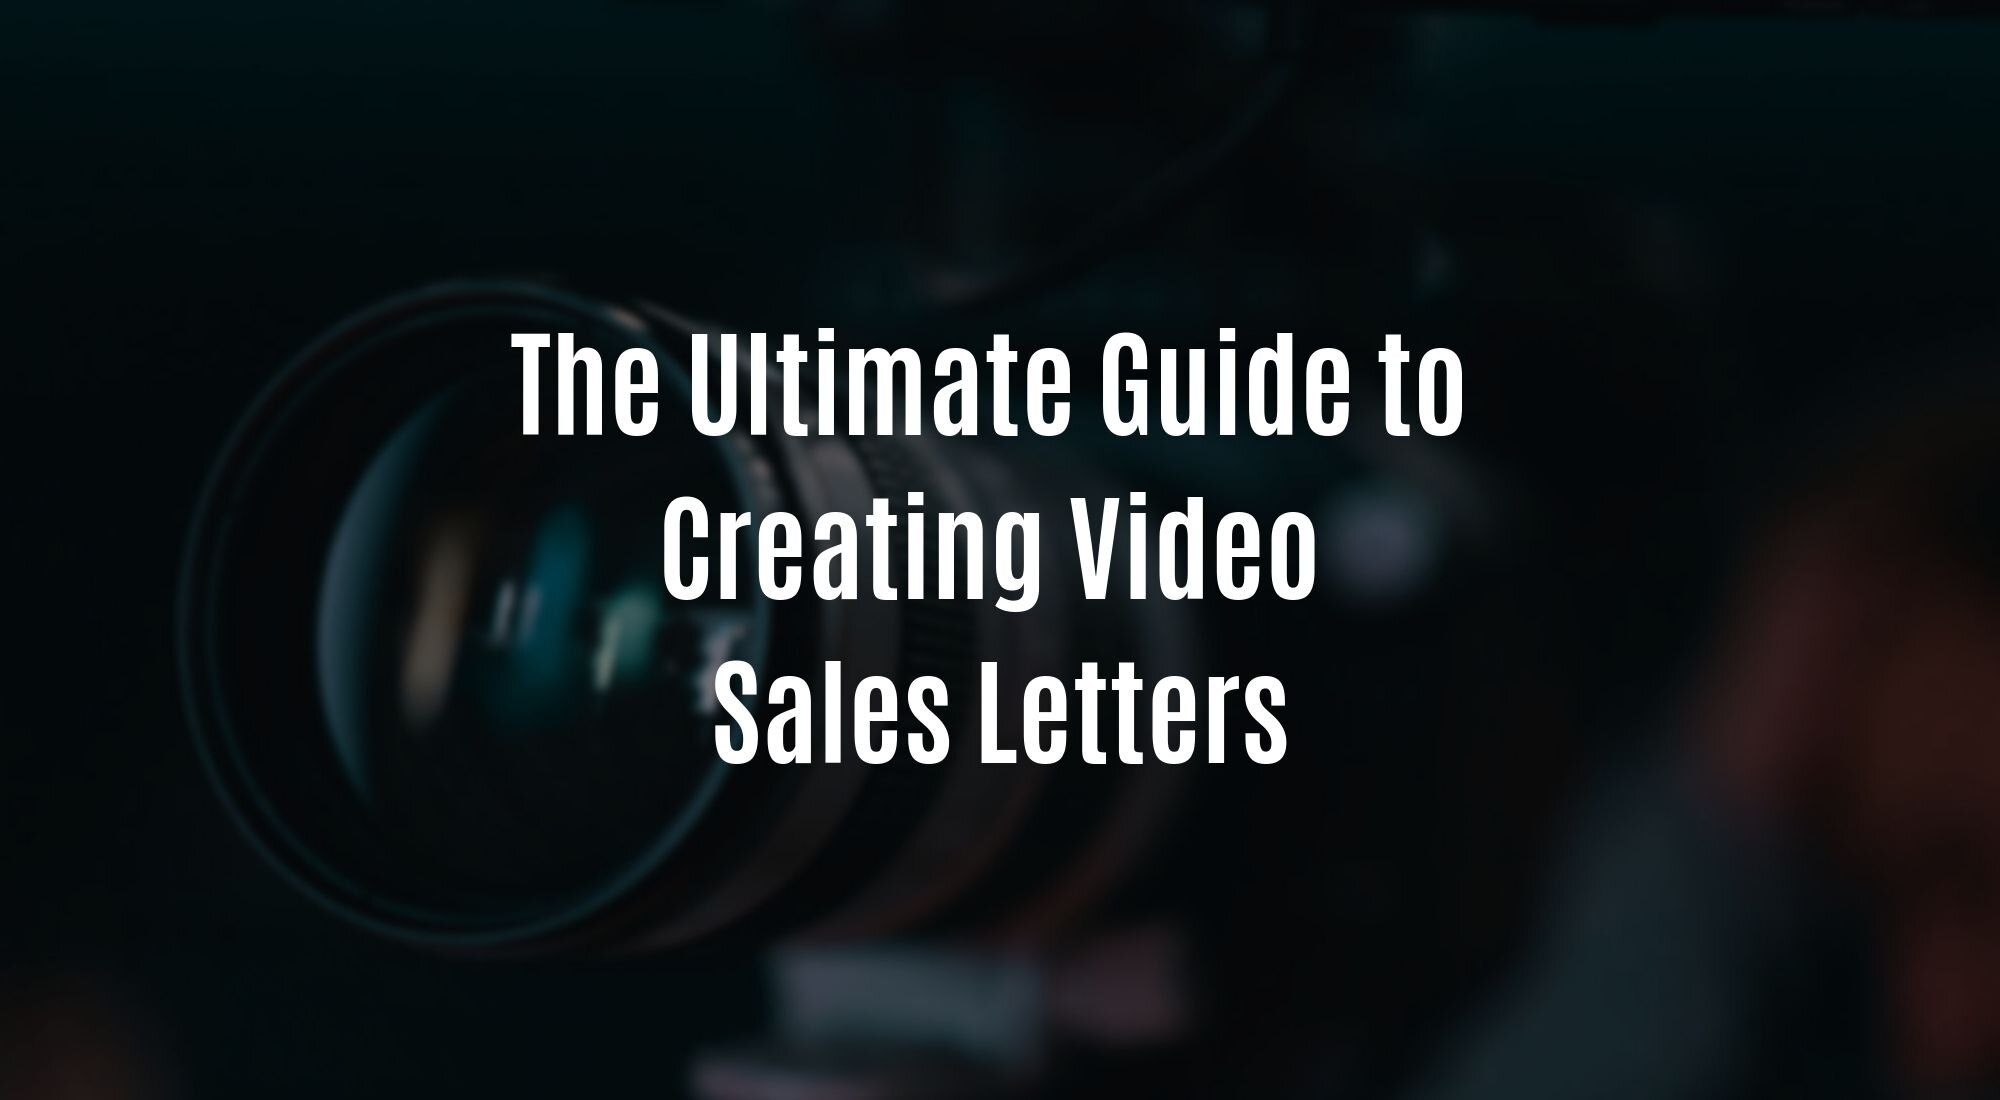 The Ultimate Guide to Creating Video Sales Letters.jpg